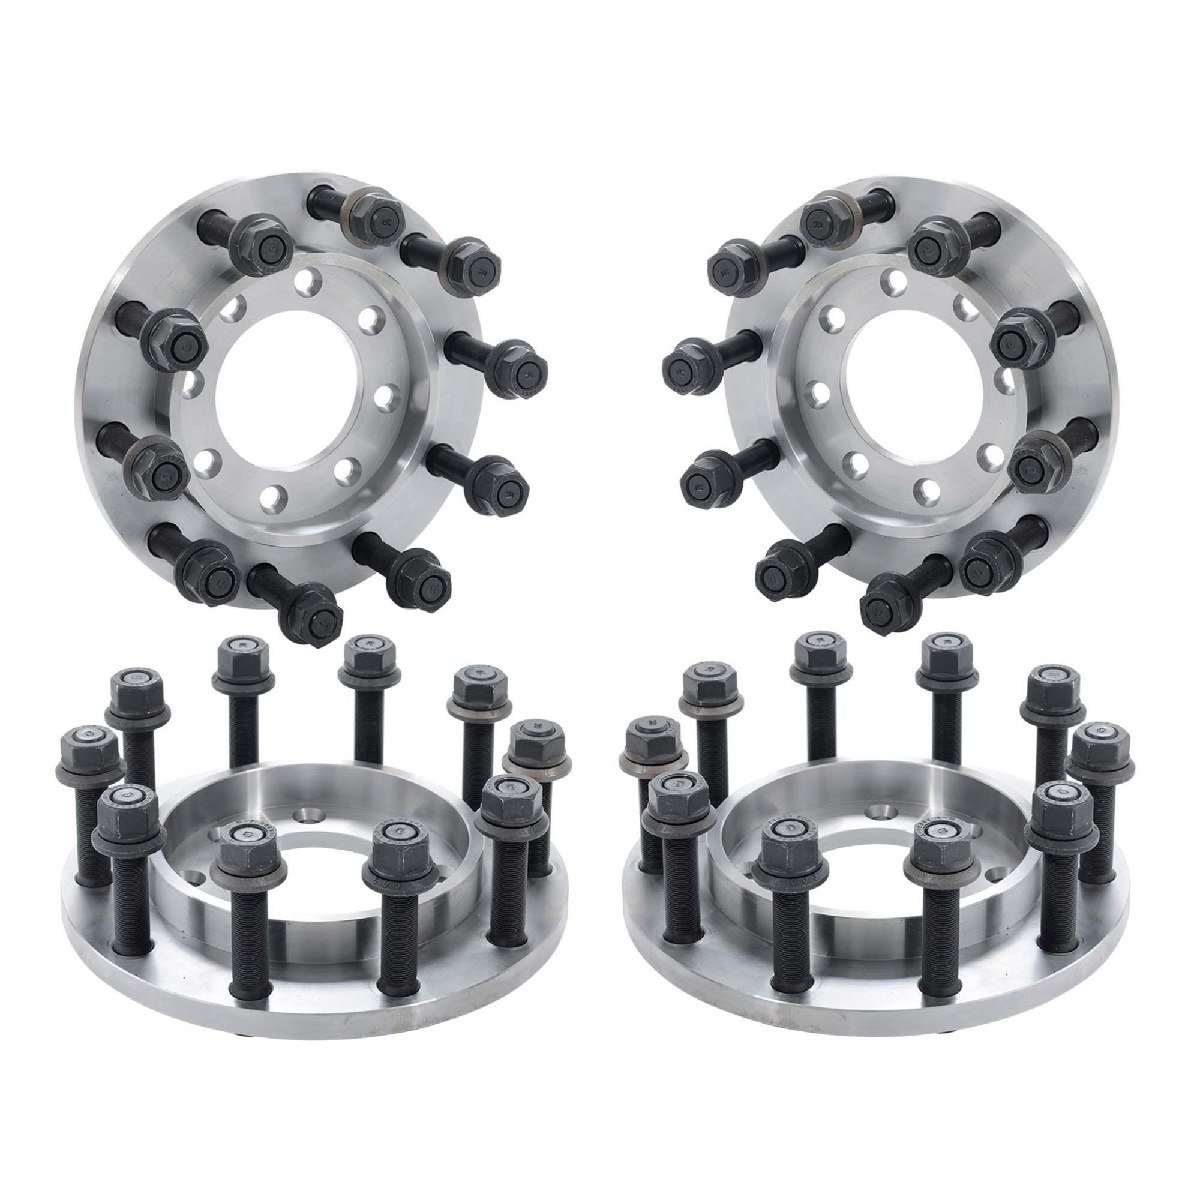 2005-Present Ford 3500 8 To 10 Lug Dually Adapter Set DP 200